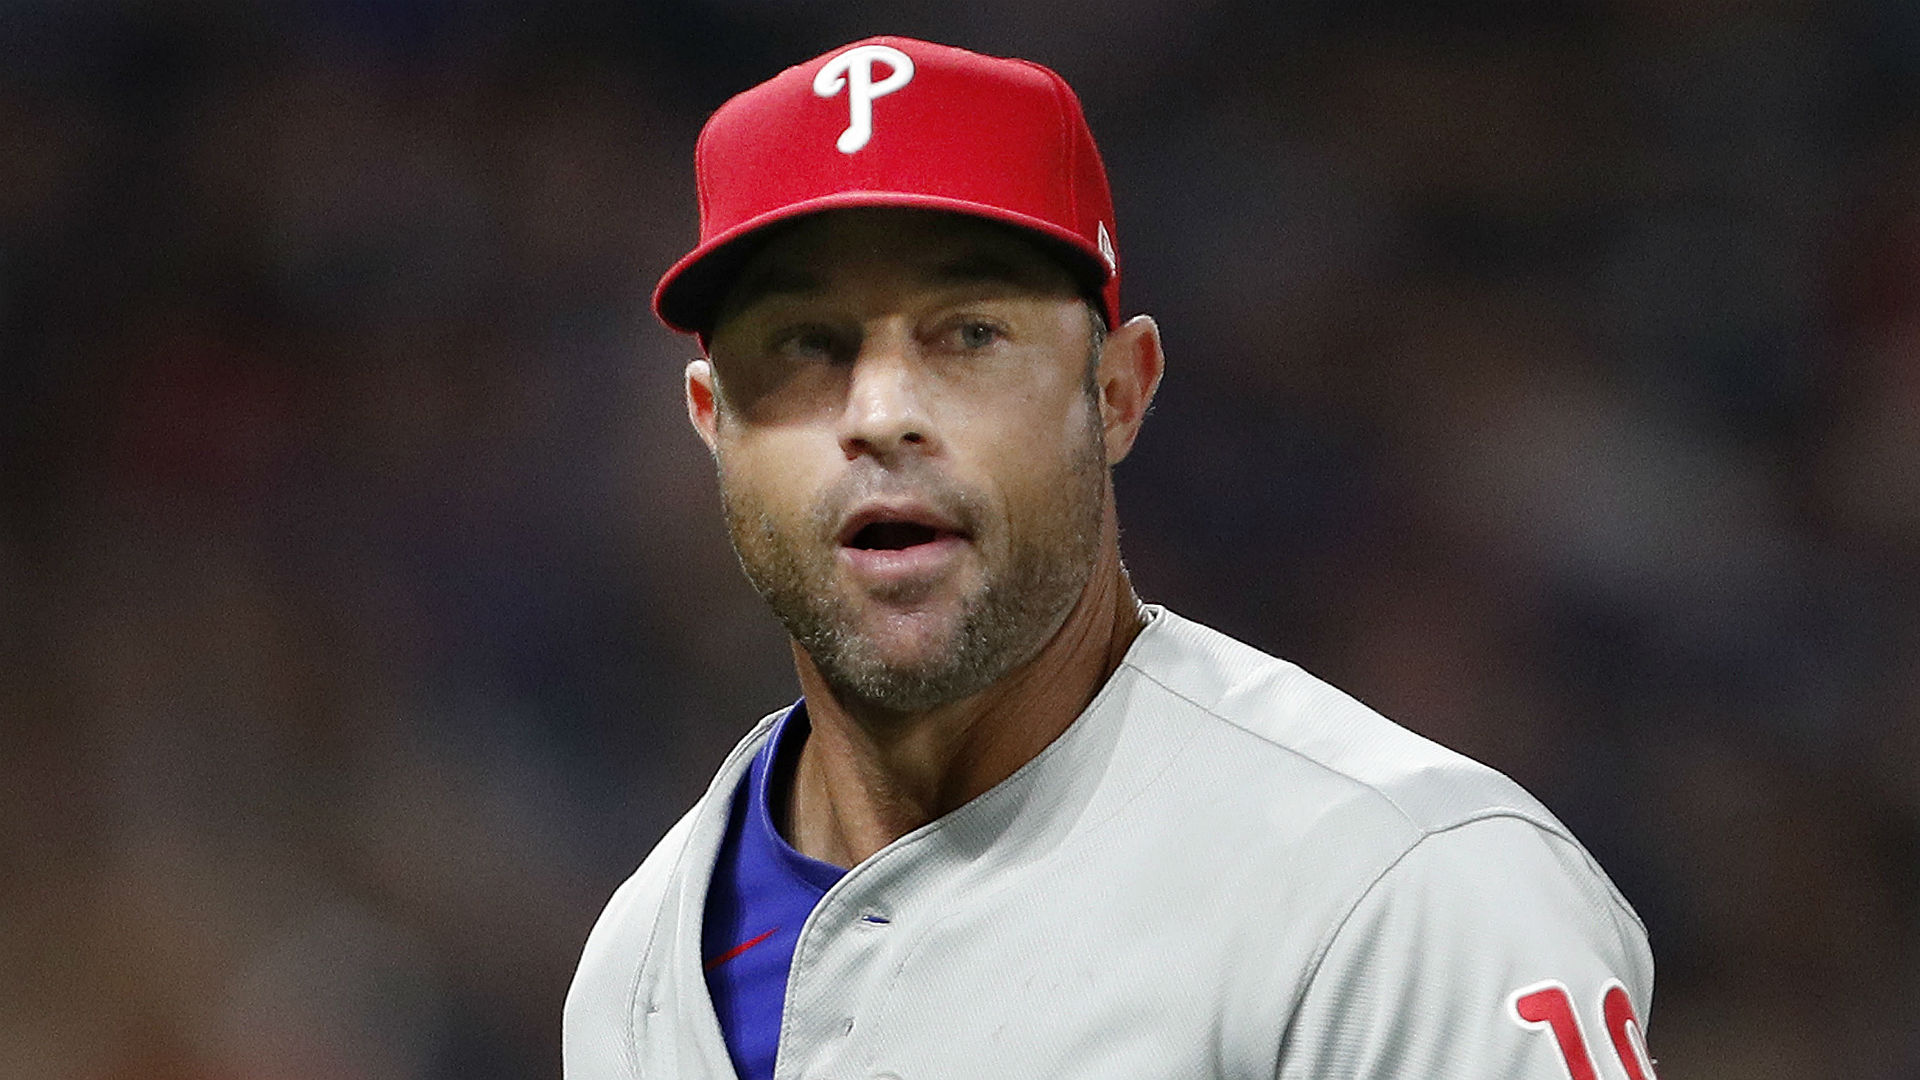 A huge offseason spending spree netted only a one-game improvement in 2019, prompting the end of Kapler's reign.